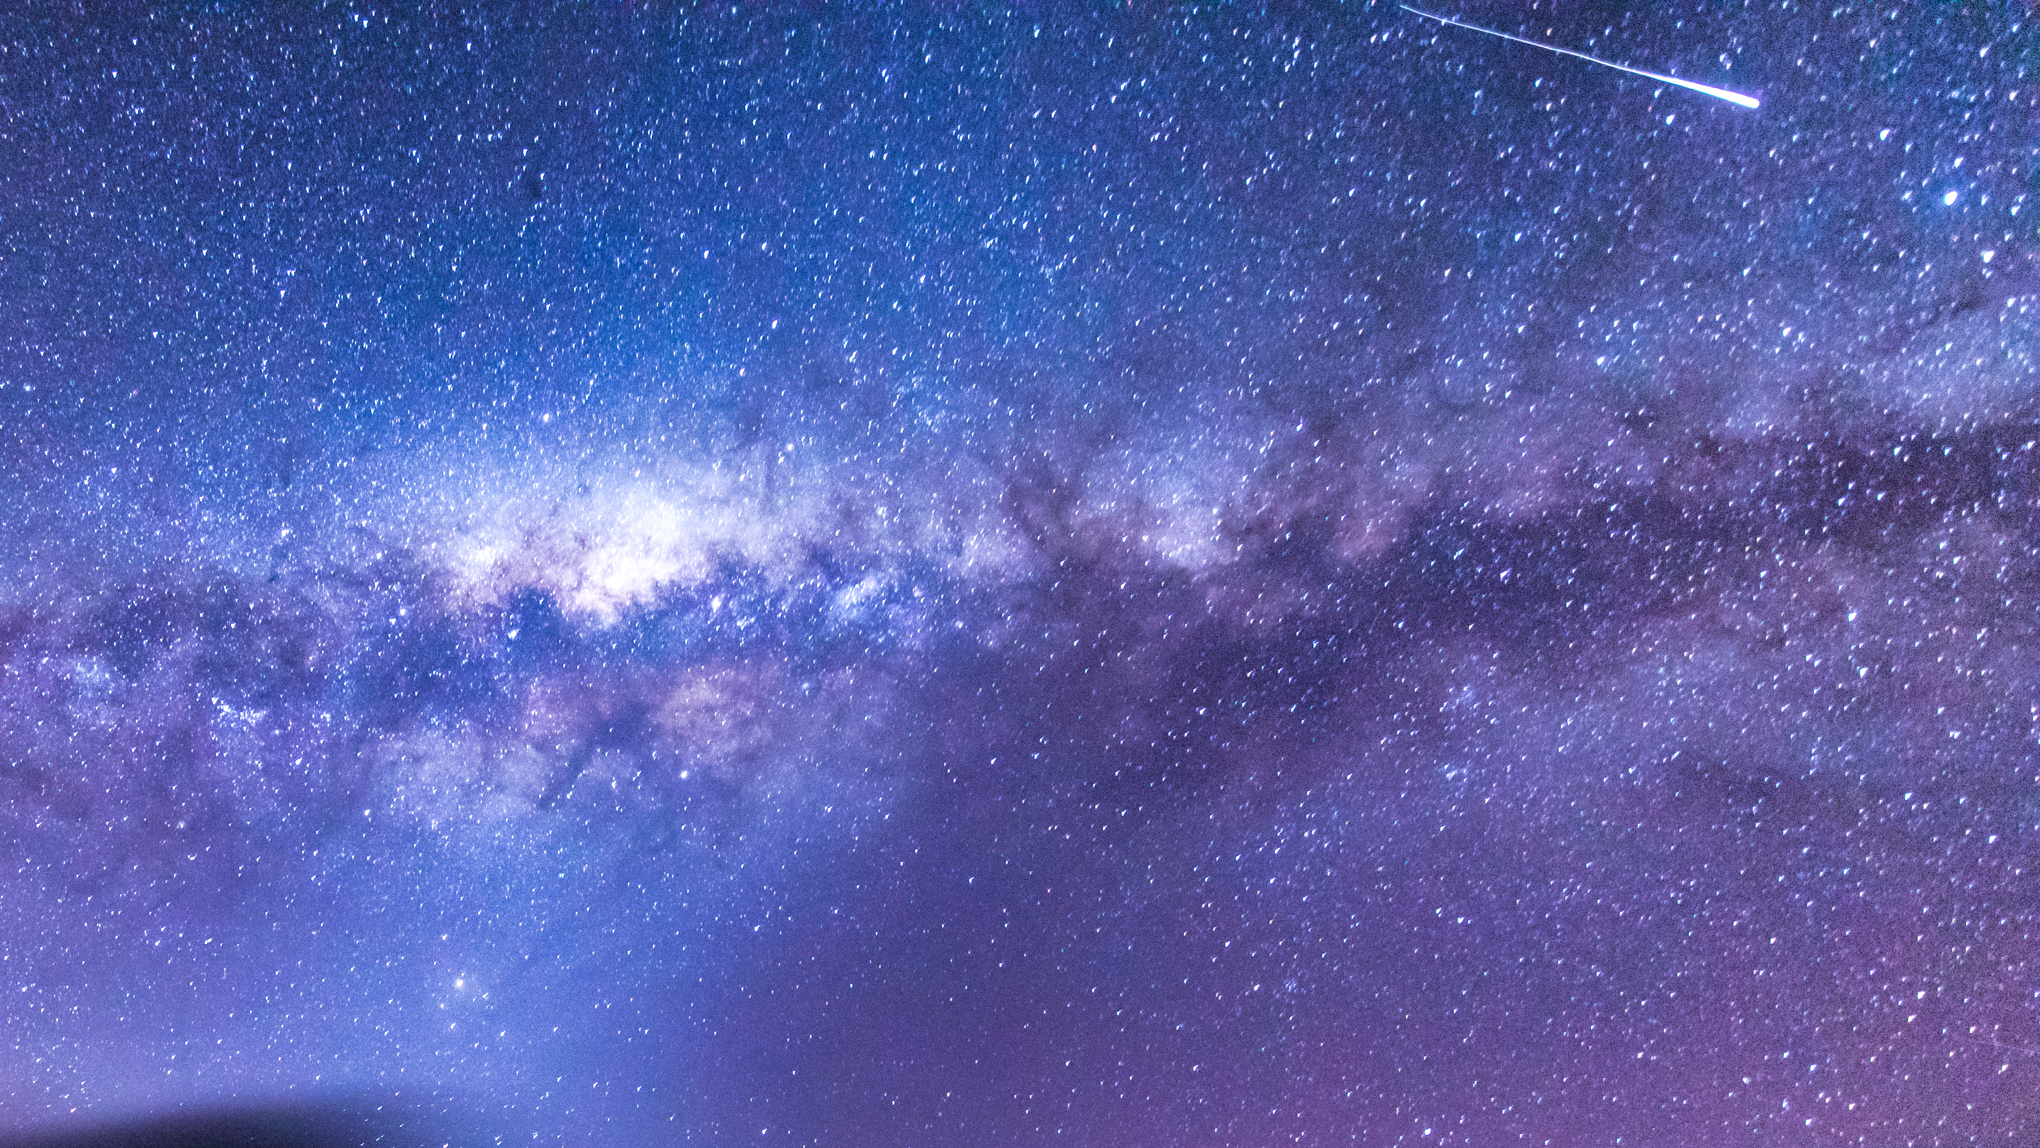 Orionids Meteor Shower captured above the Milkyway and Galactic Kiwi